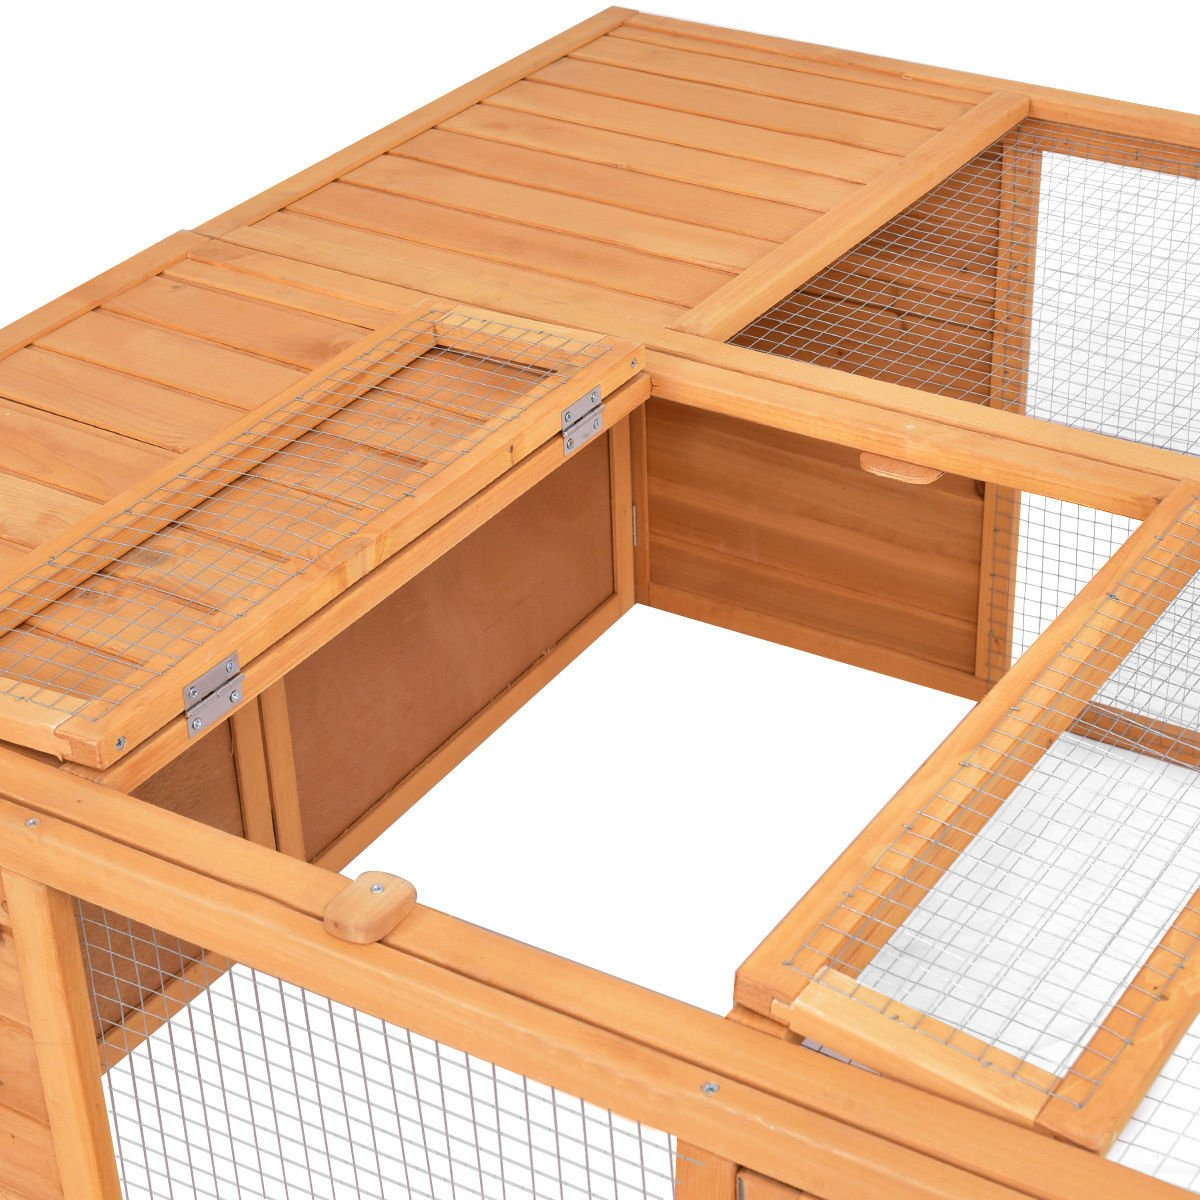 Tangkula Chicken Coop, Wooden Garden Backyard Bunny Chicken Rabbit Duck Small Animals Cage with 2 Doors,Hen House (47'') by Tangkula (Image #6)